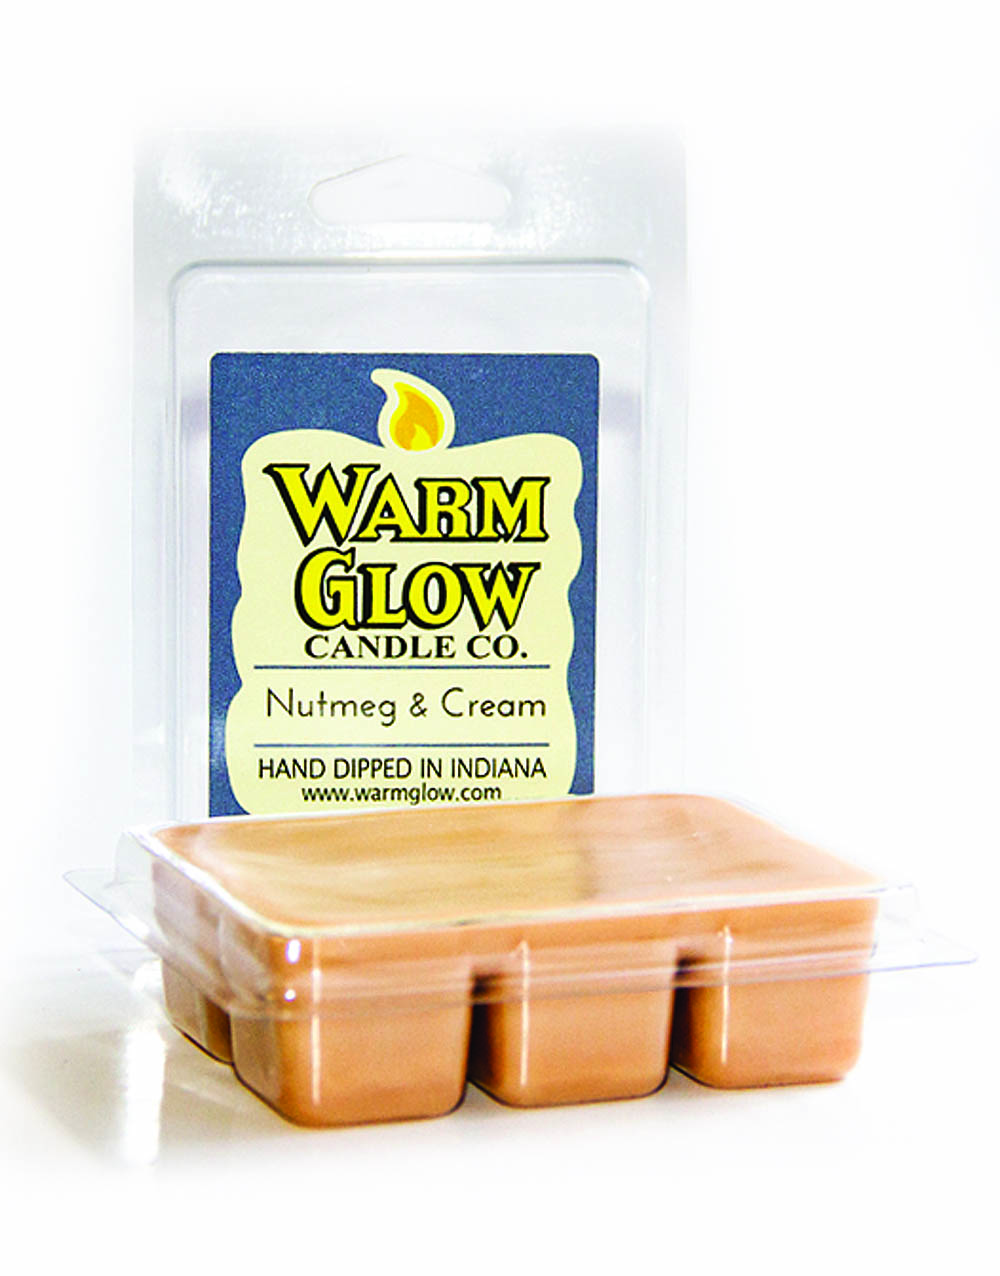 Nutmeg & Cream Scented Melt